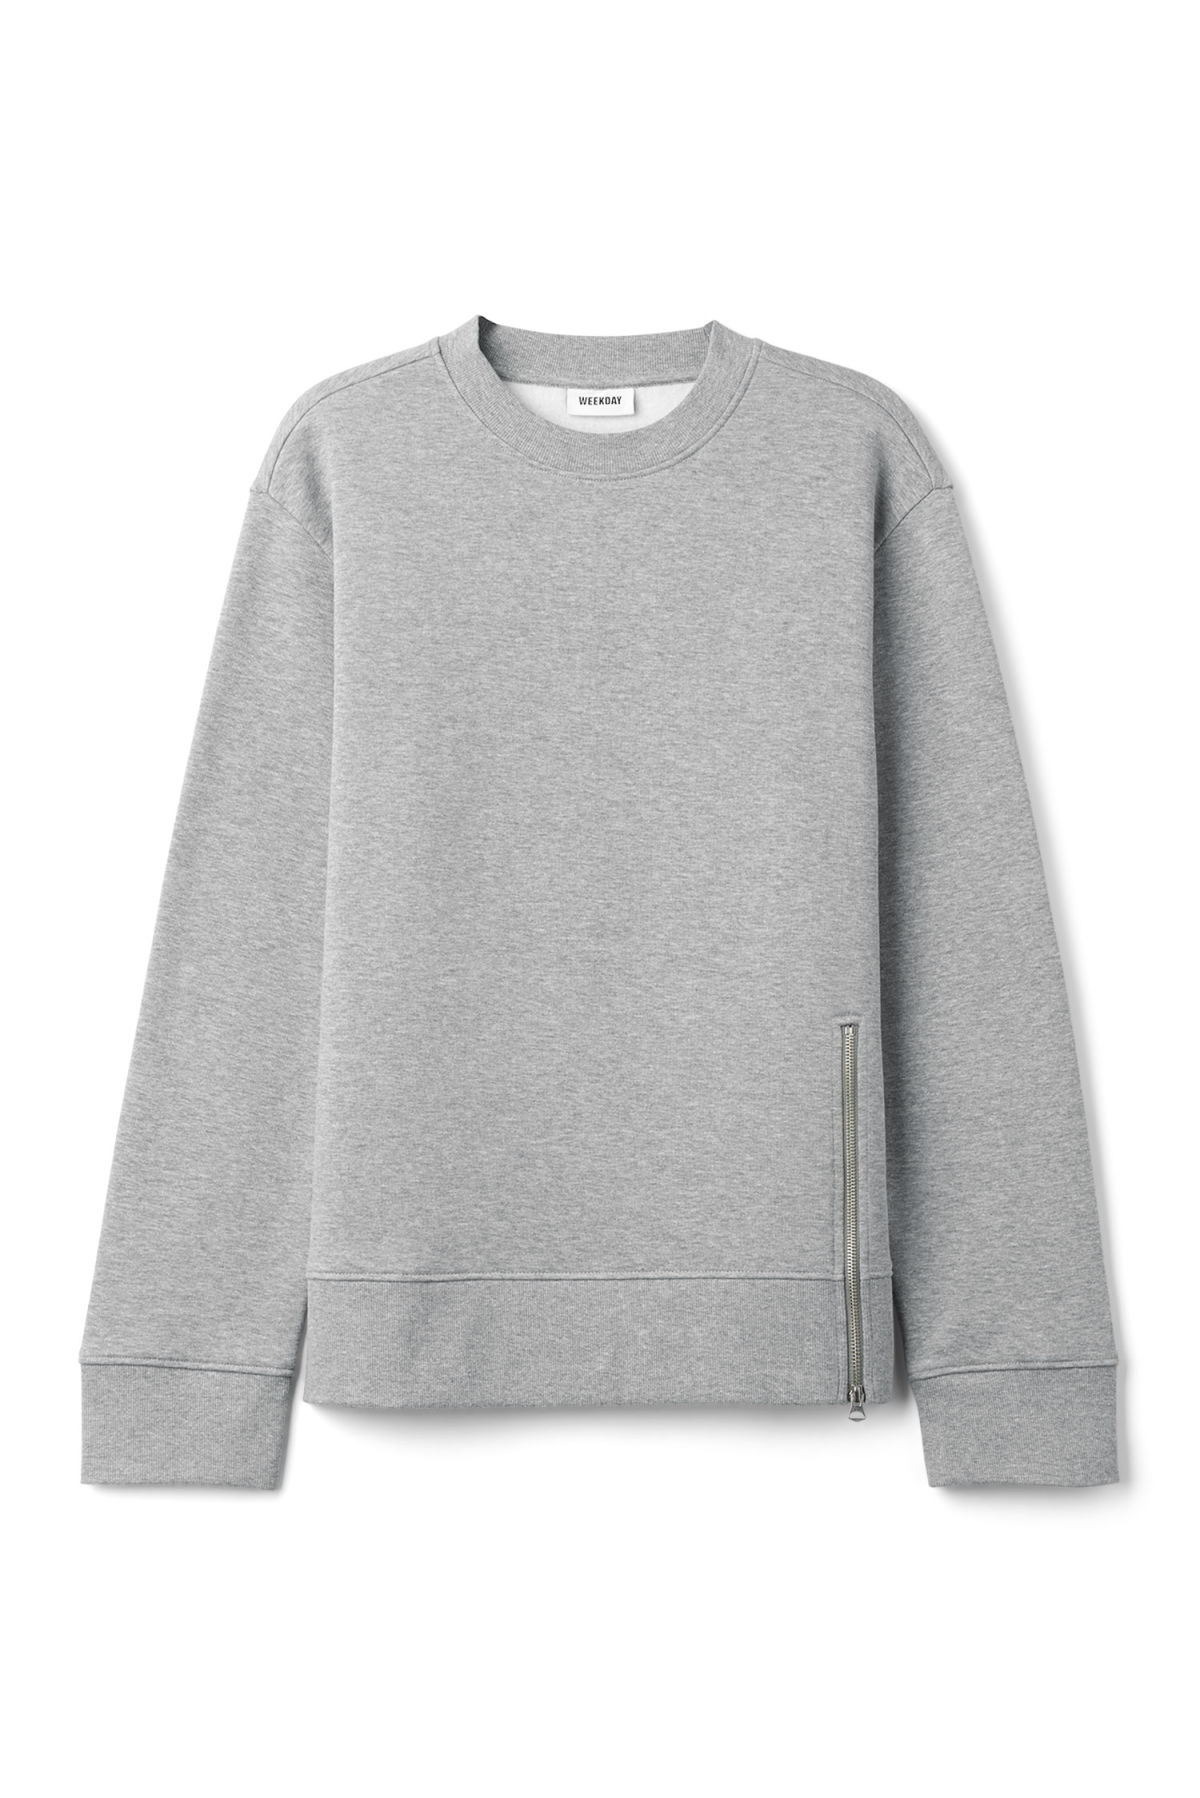 Front image of Weekday grant zip sweatshirt in grey